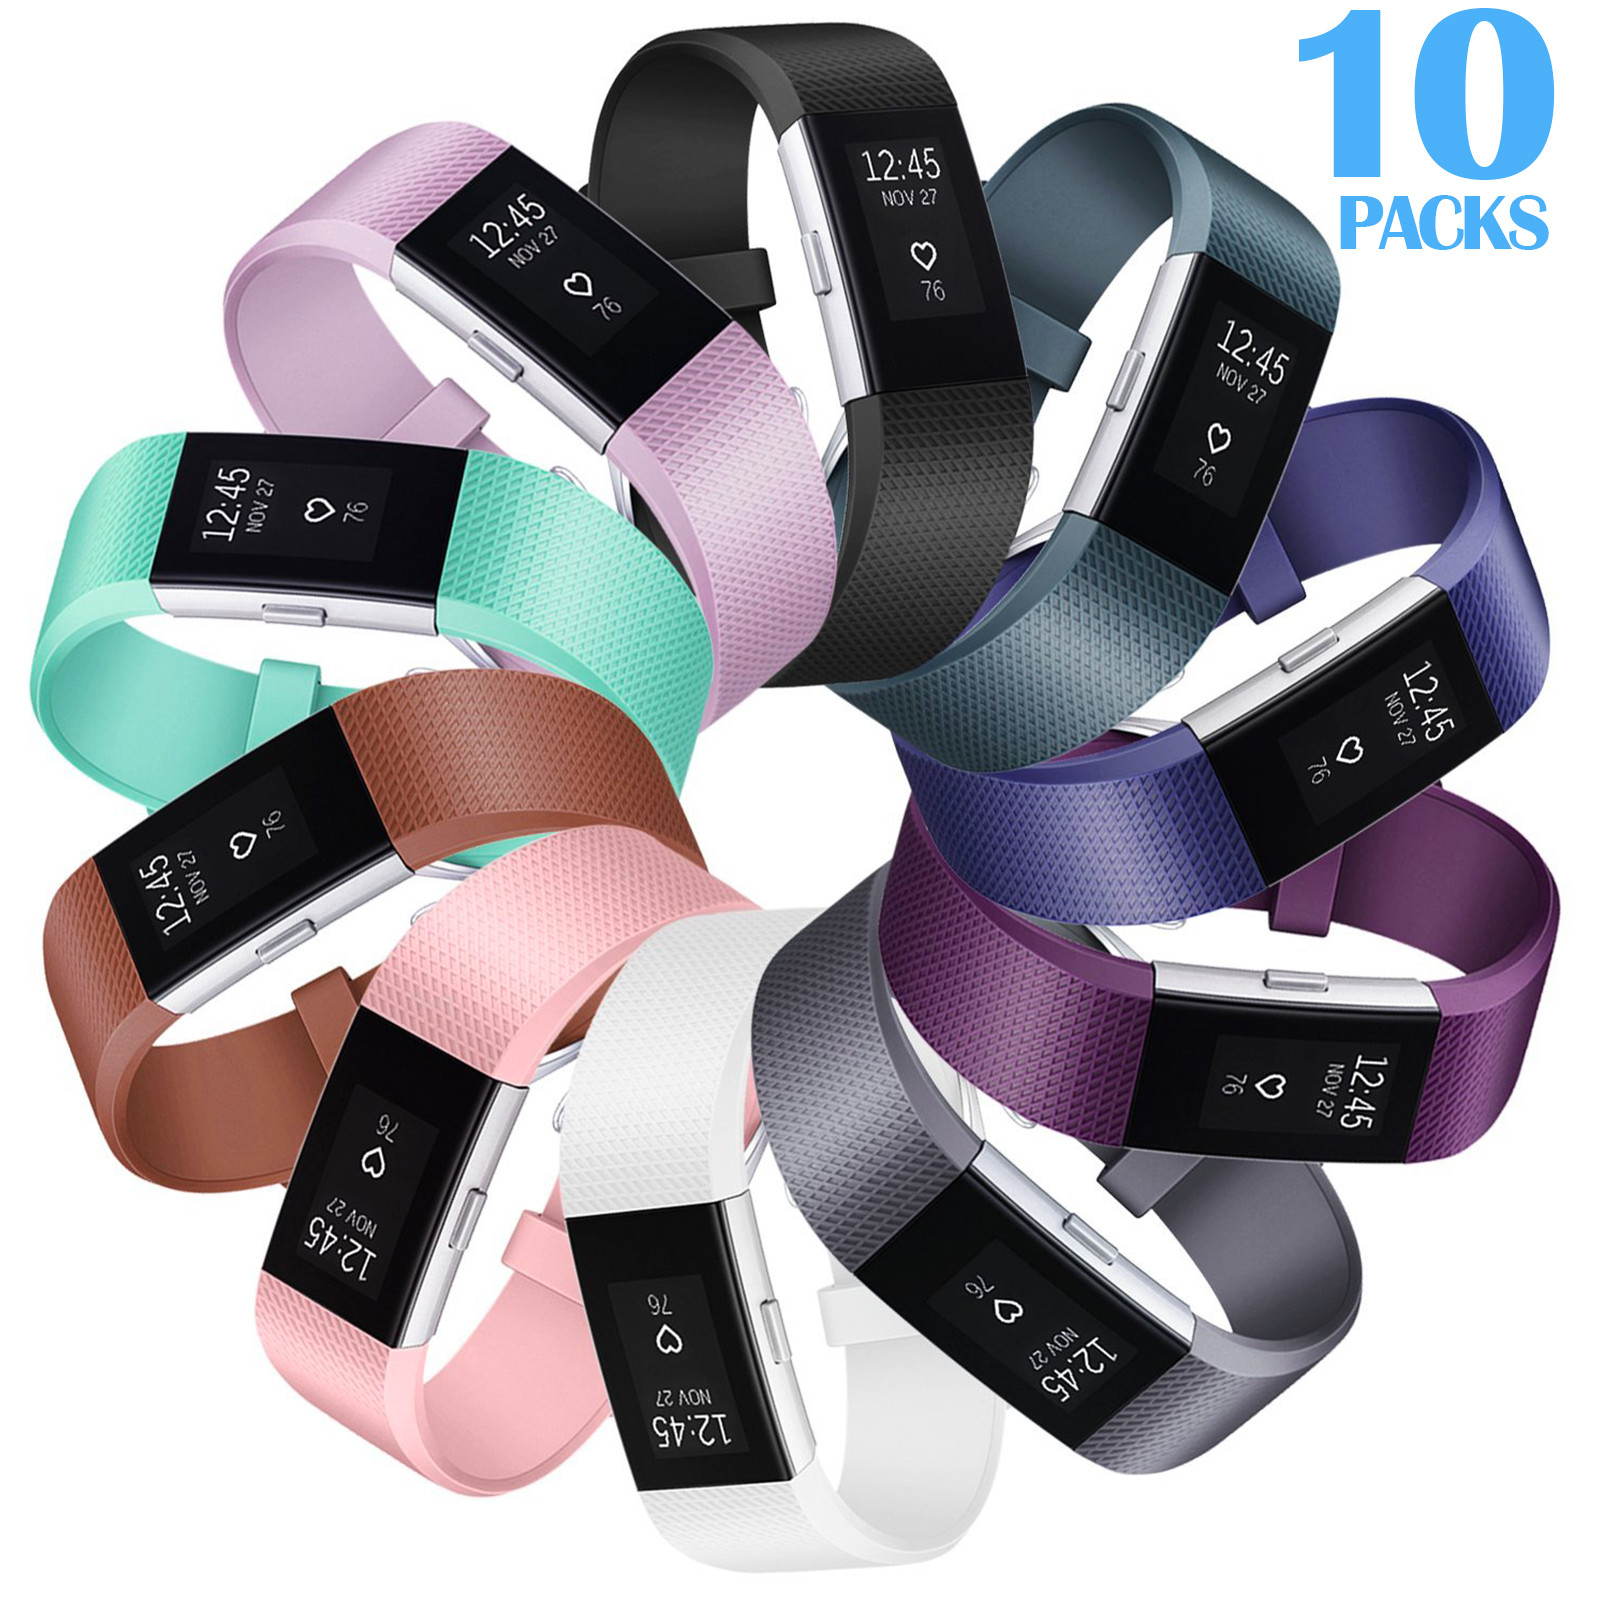 10Packs Silicone Bands for Fitbit Charge 2, Small Size Soft Silicone Wrist Strap for Fitbit Charge 2 by